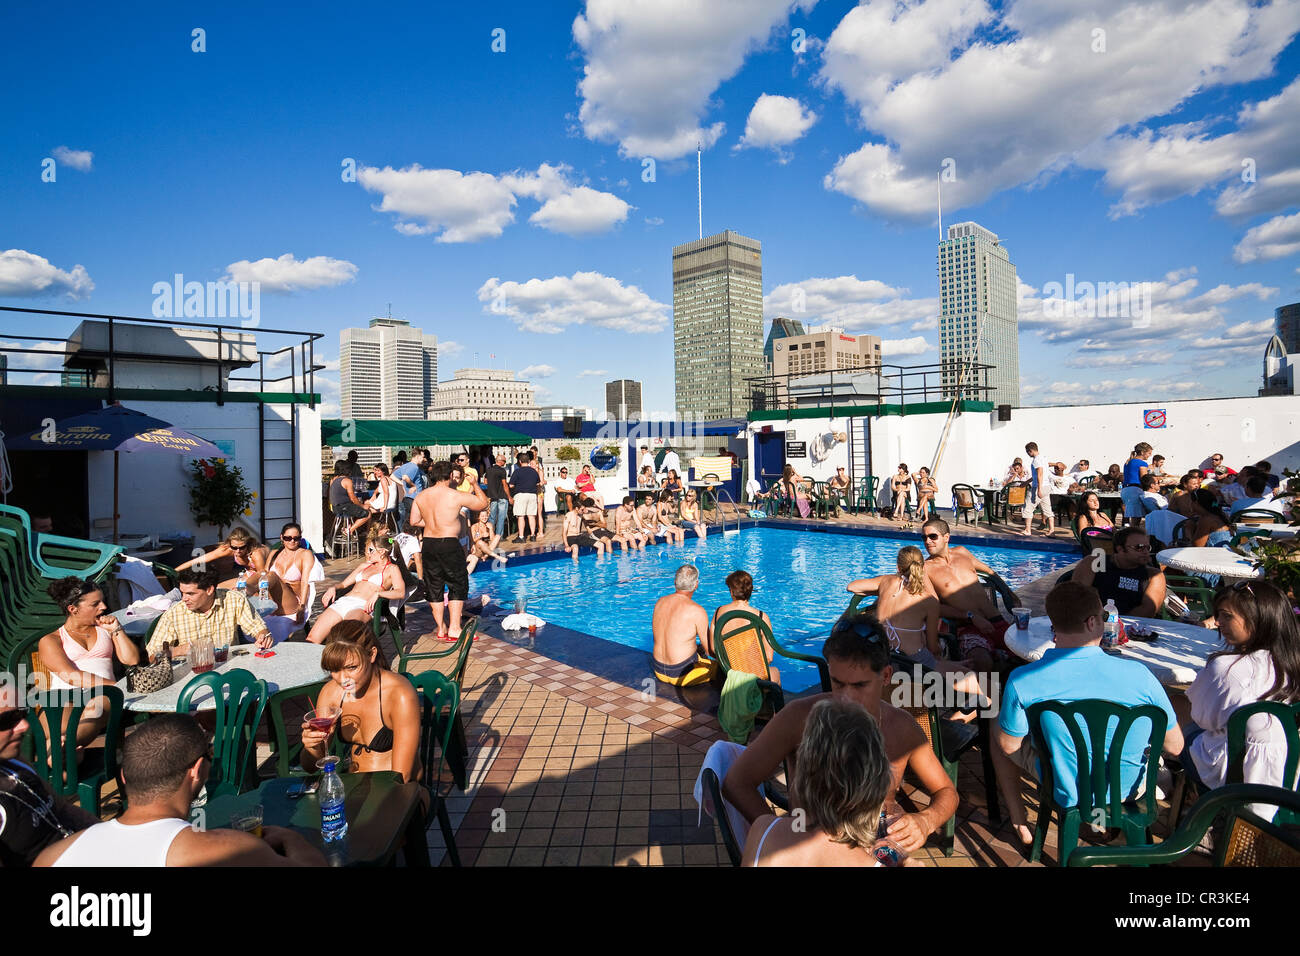 Canada, Quebec Province, Montreal, terrace and swimming pool